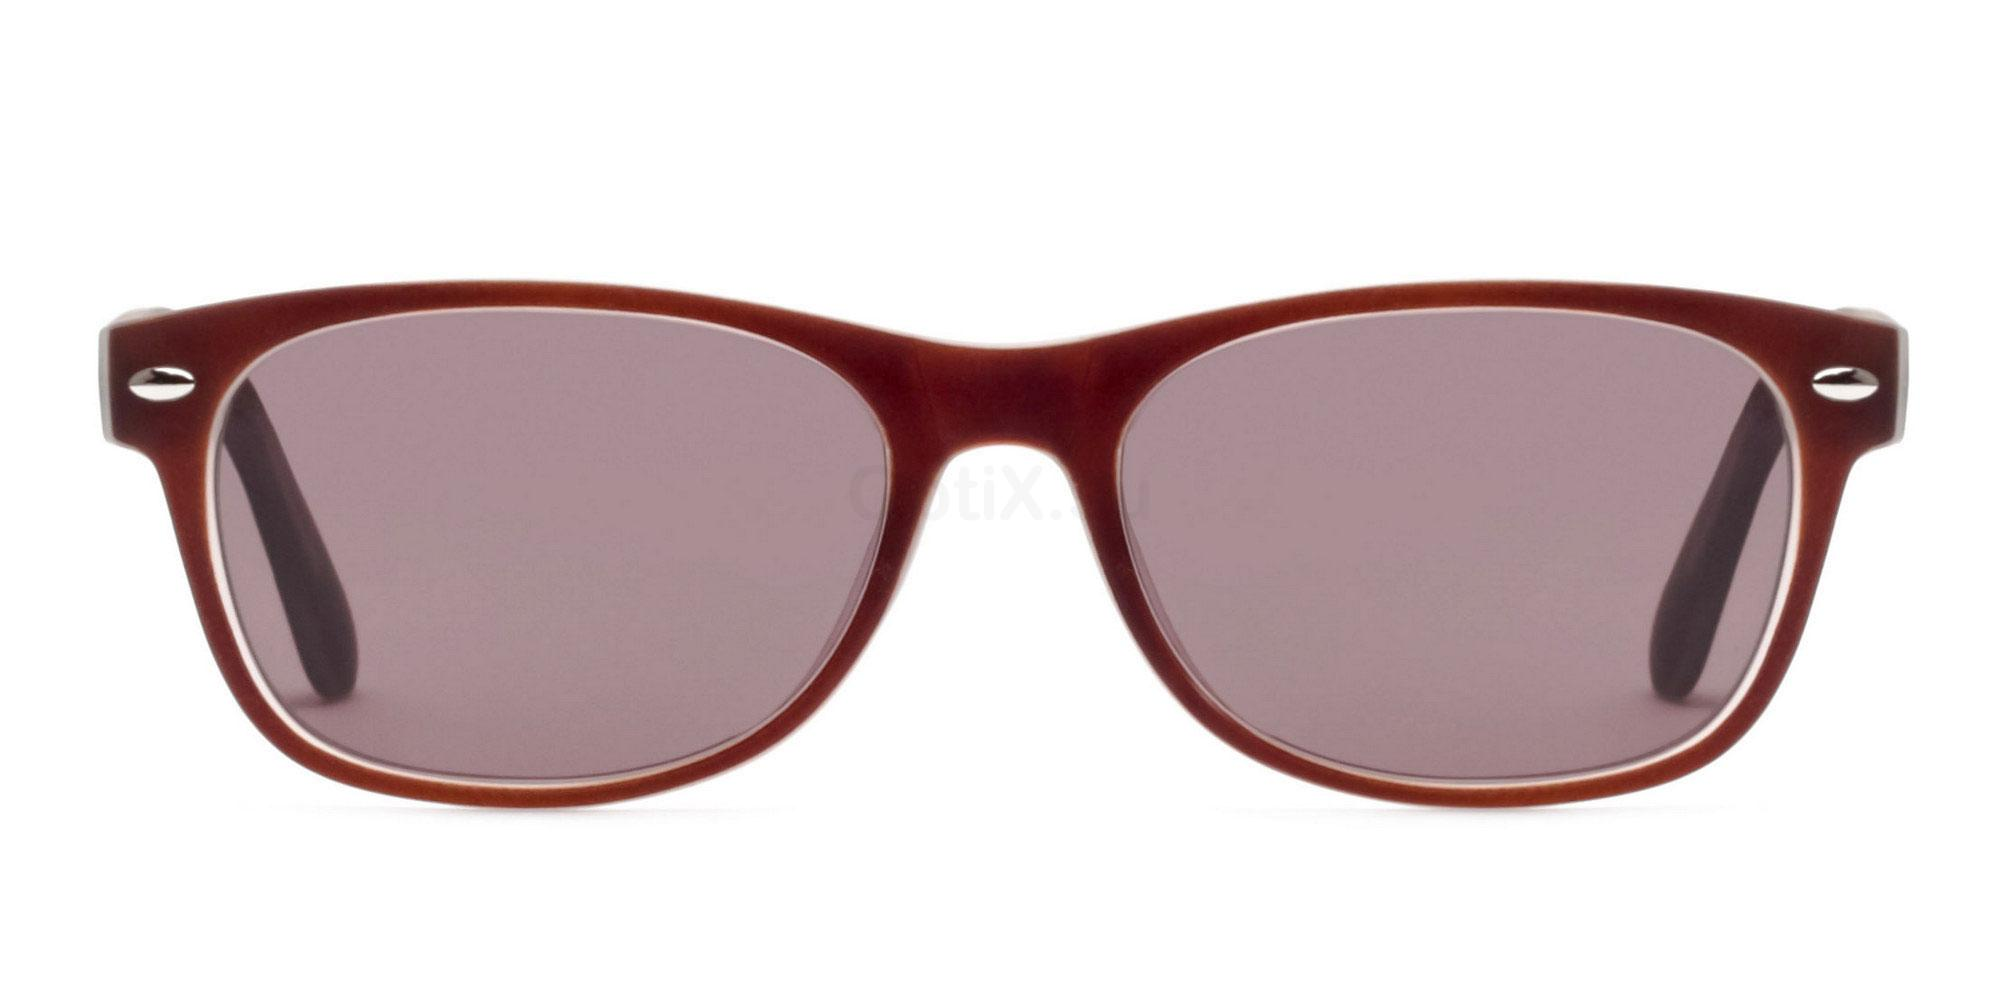 Brown S8122 - Brown (Sunglasses) Sunglasses, Savannah